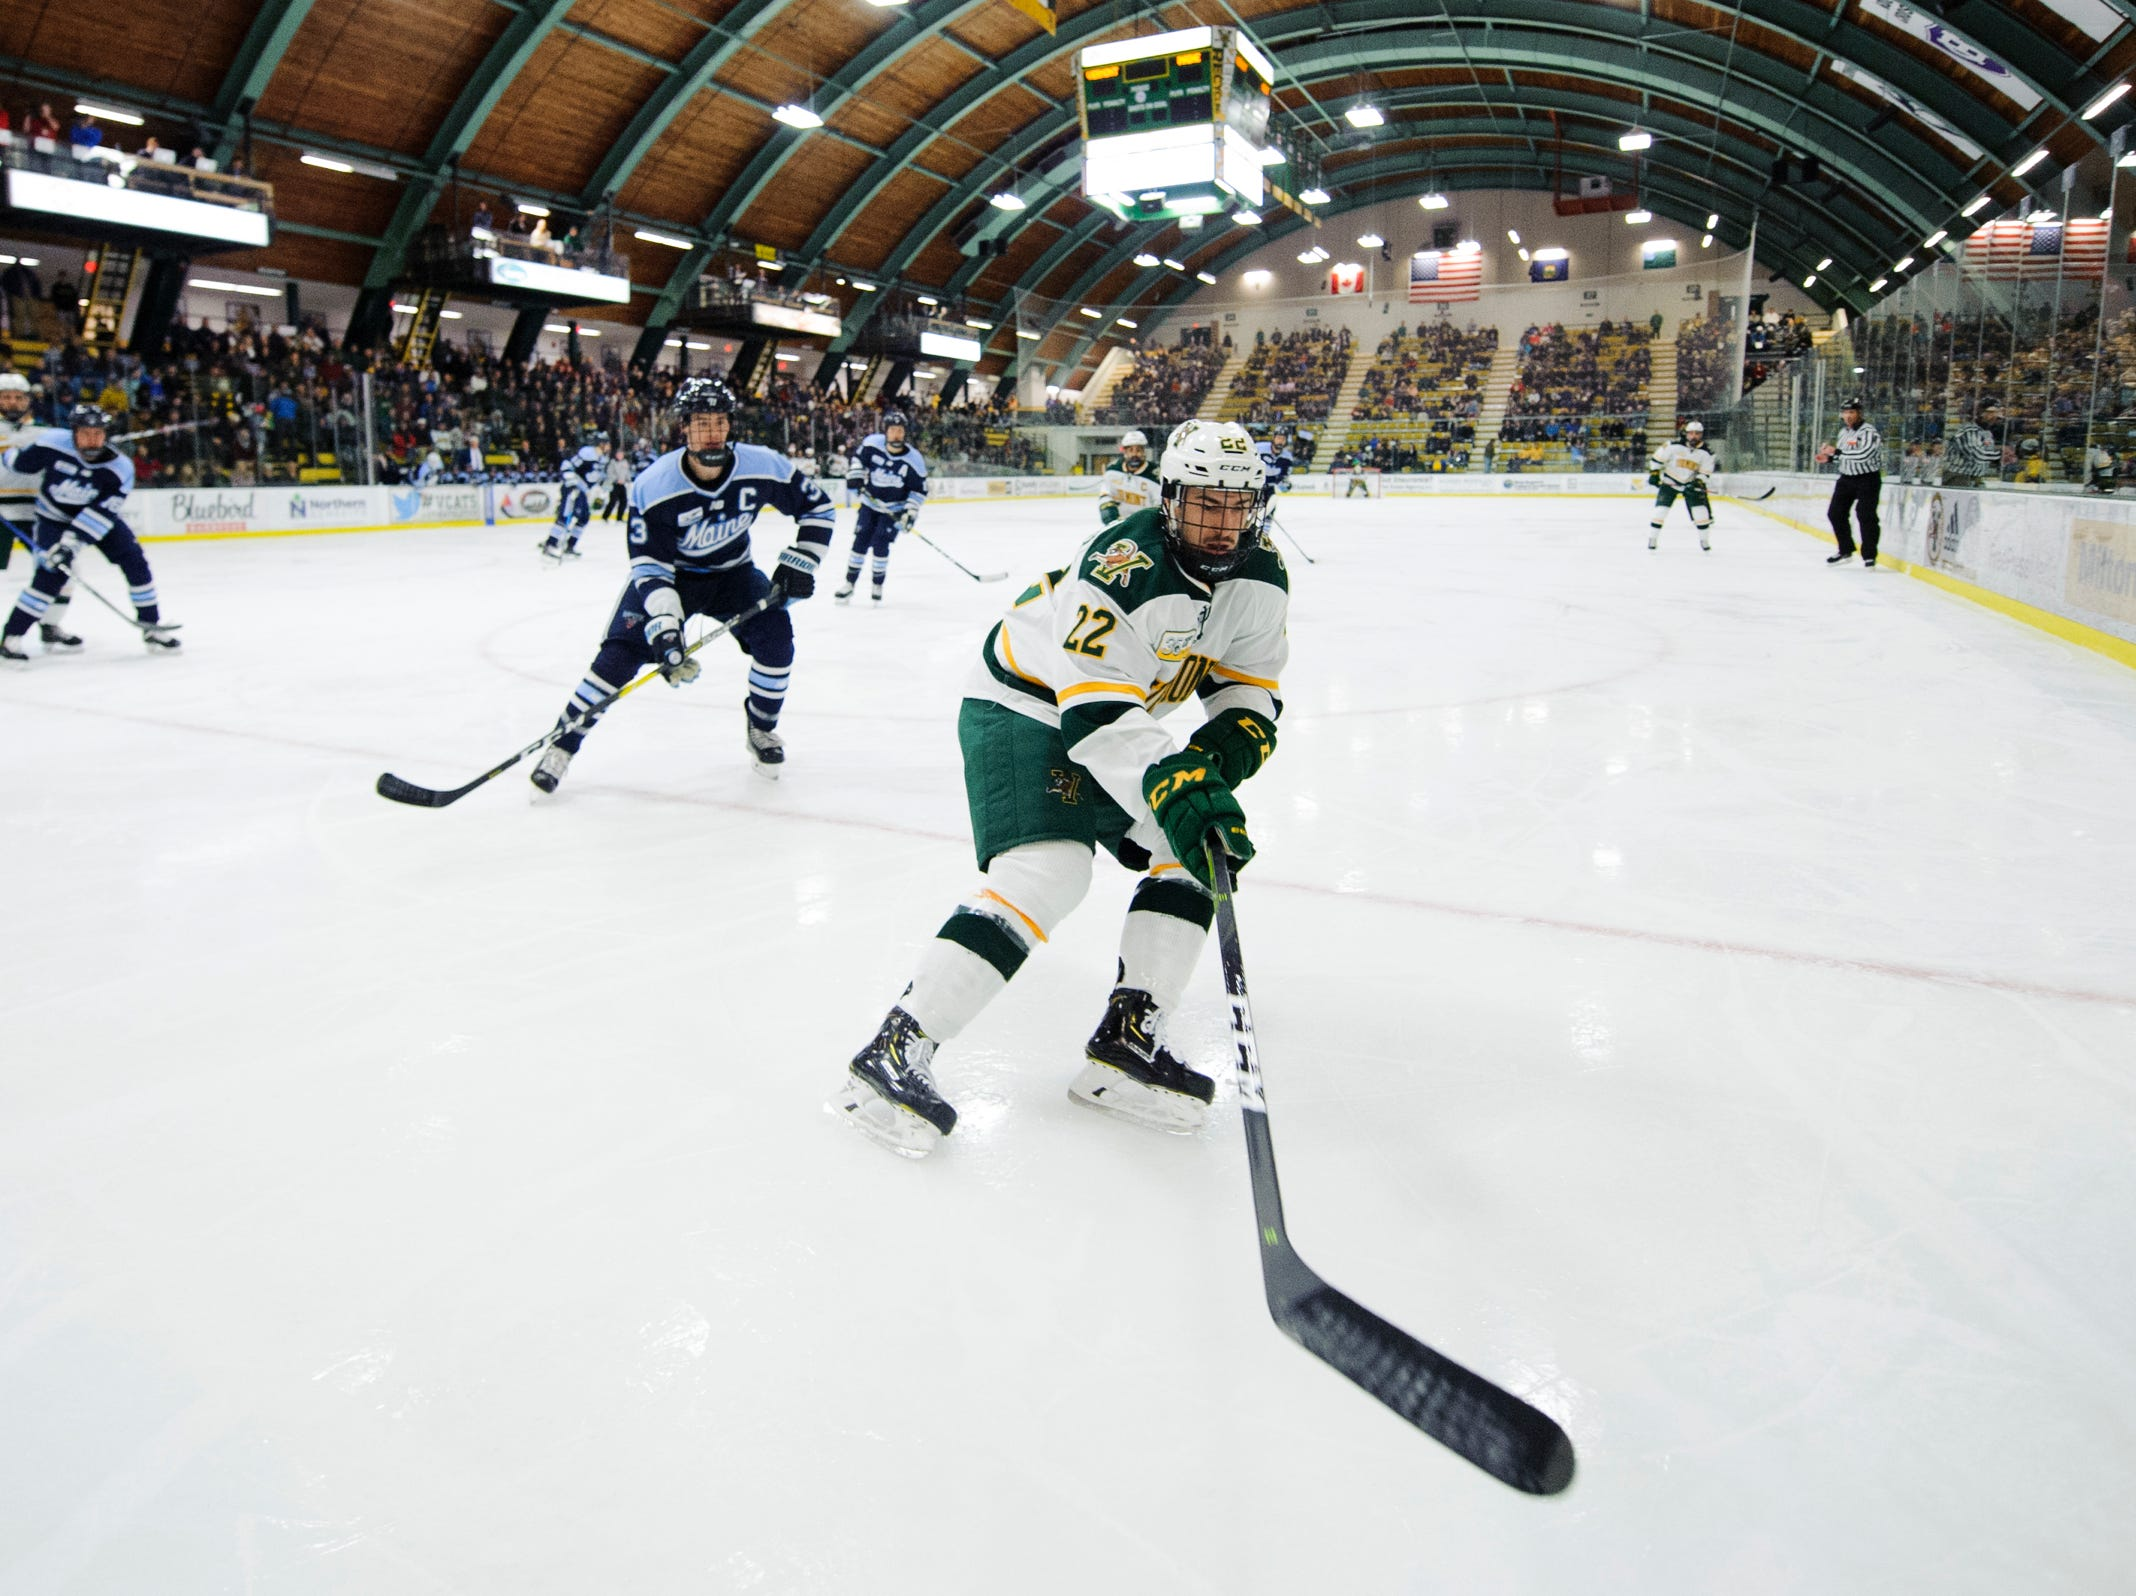 Vermont forward Alex Esposito (22) plays the puck in the corner during the men's hockey game between the Mine Black Bears and the Vermont Catamounts at Gutterson Field House on Friday night November 30, 2018 in Burlington.